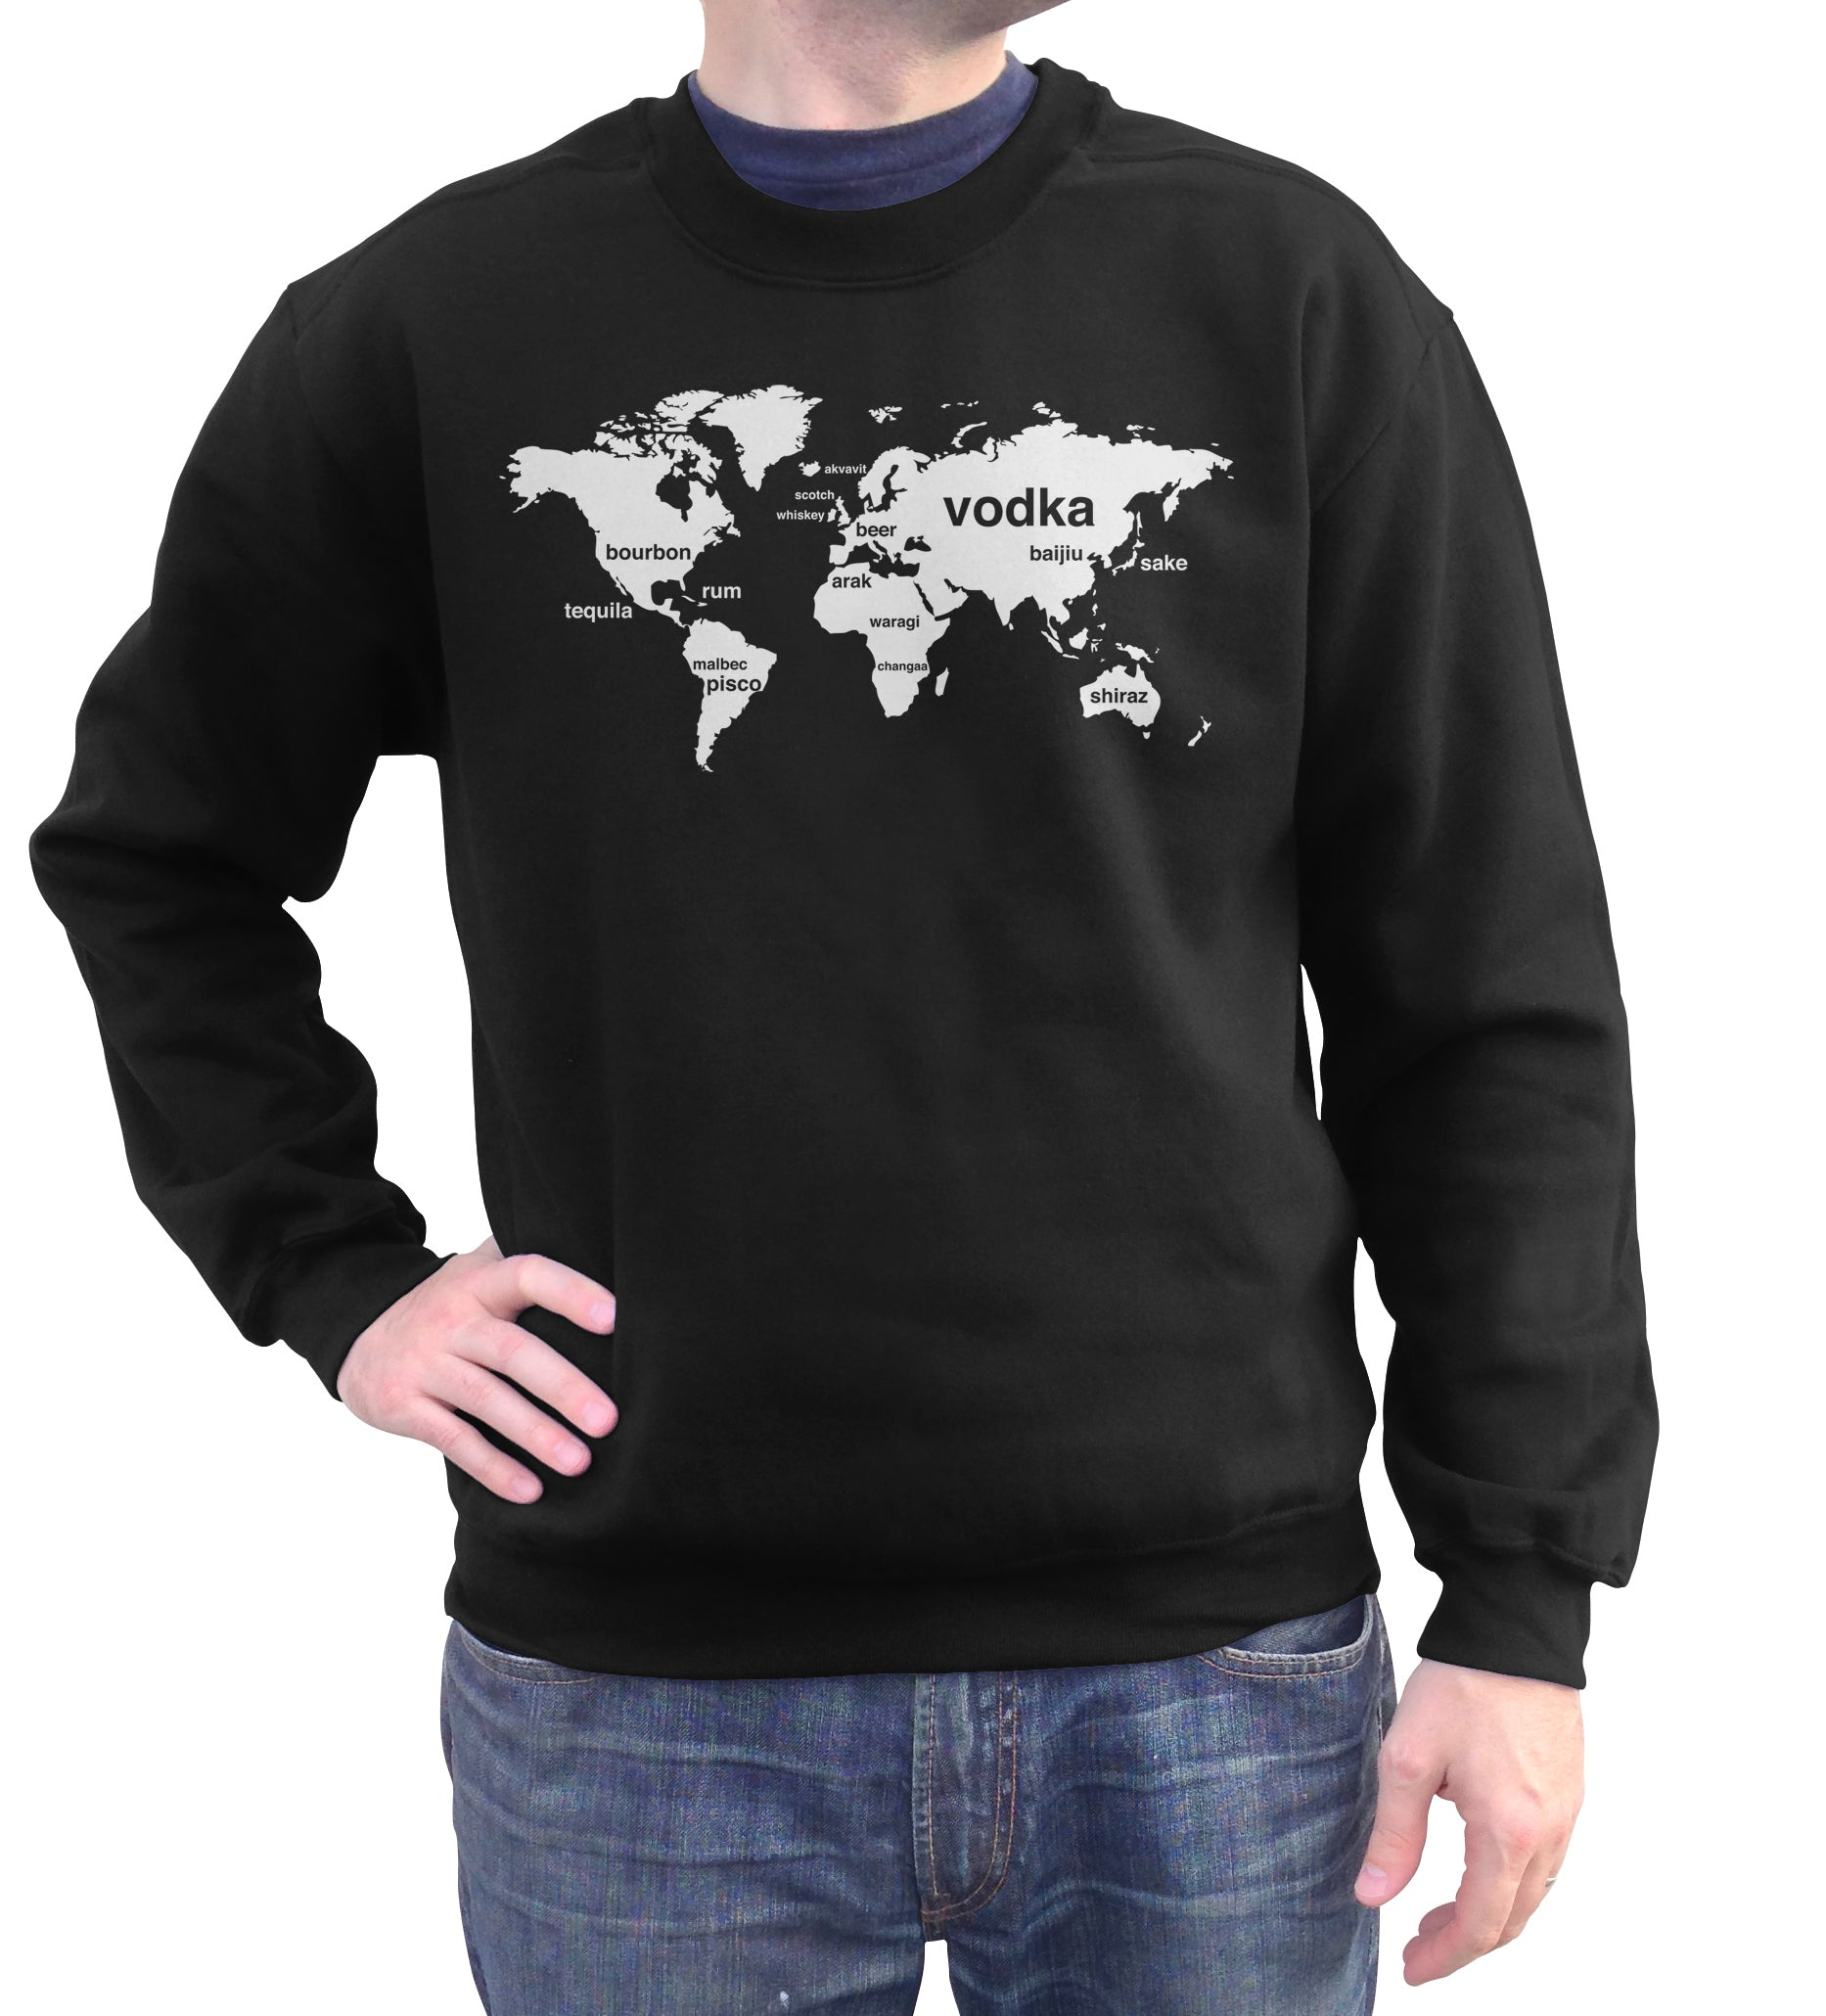 Unisex International Boozing Sweatshirt - By Ex-Boyfriend